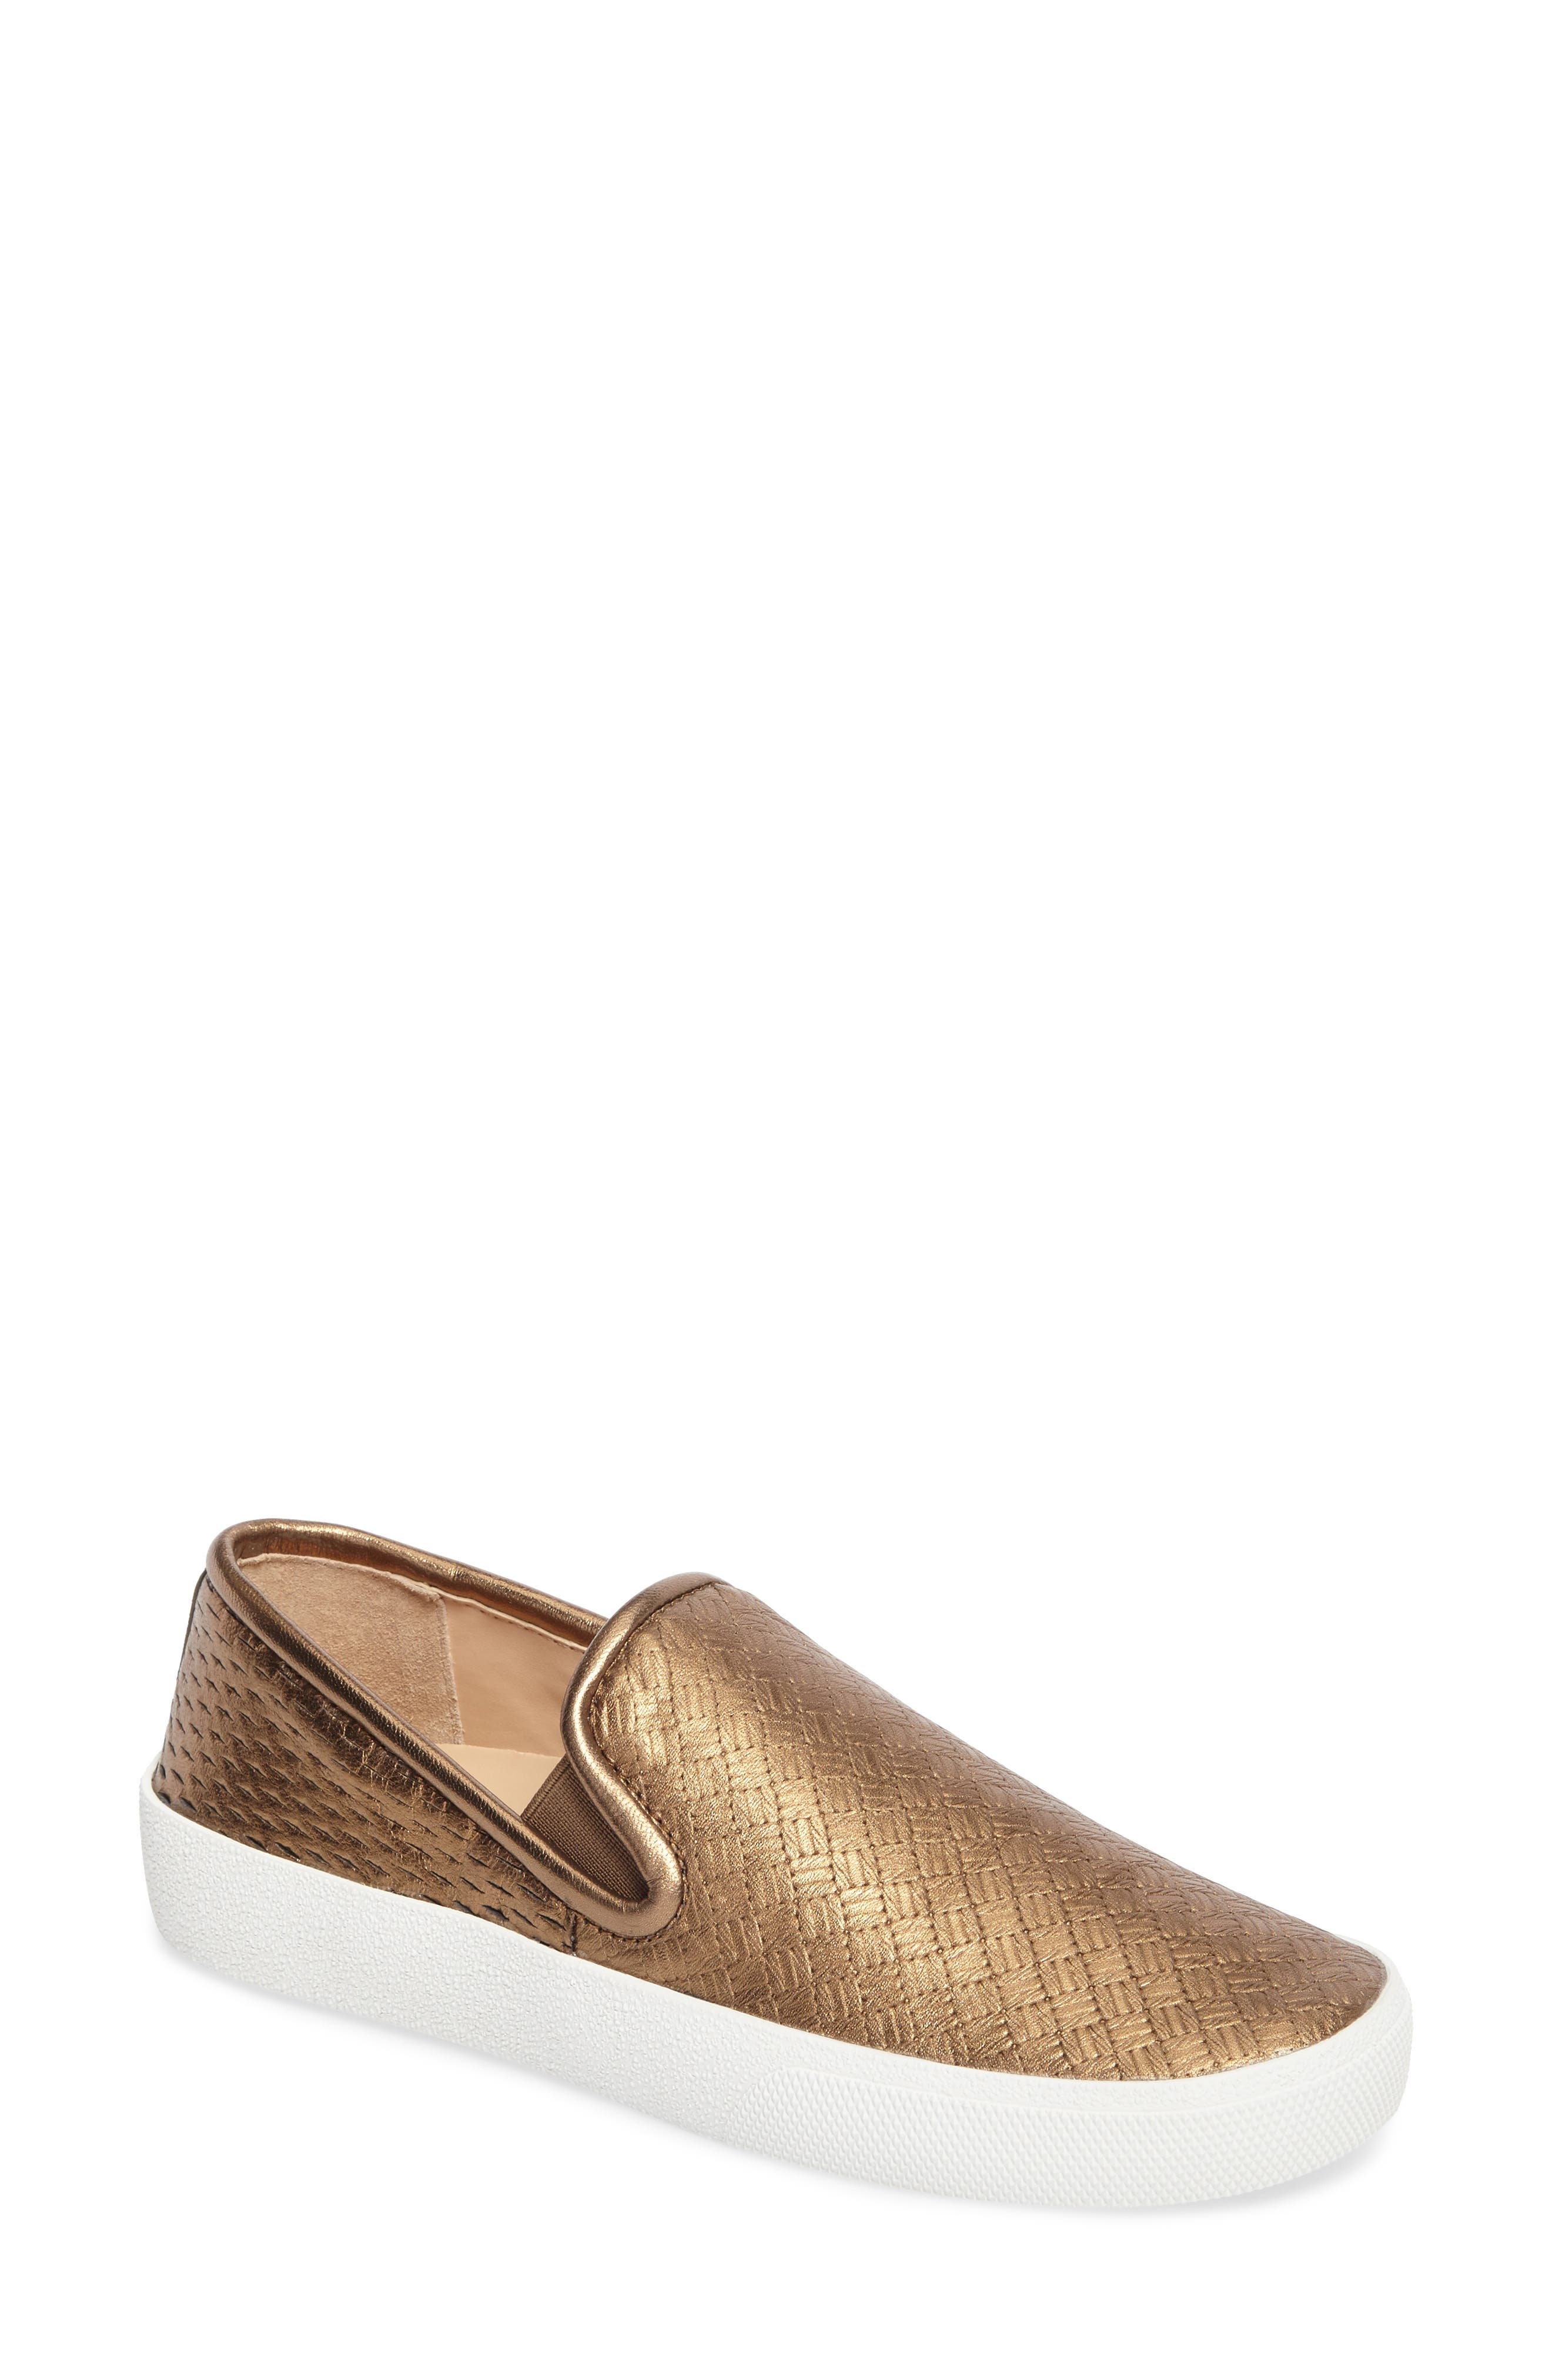 Vince Camuto Cariana Slip-On Sneaker (Women)